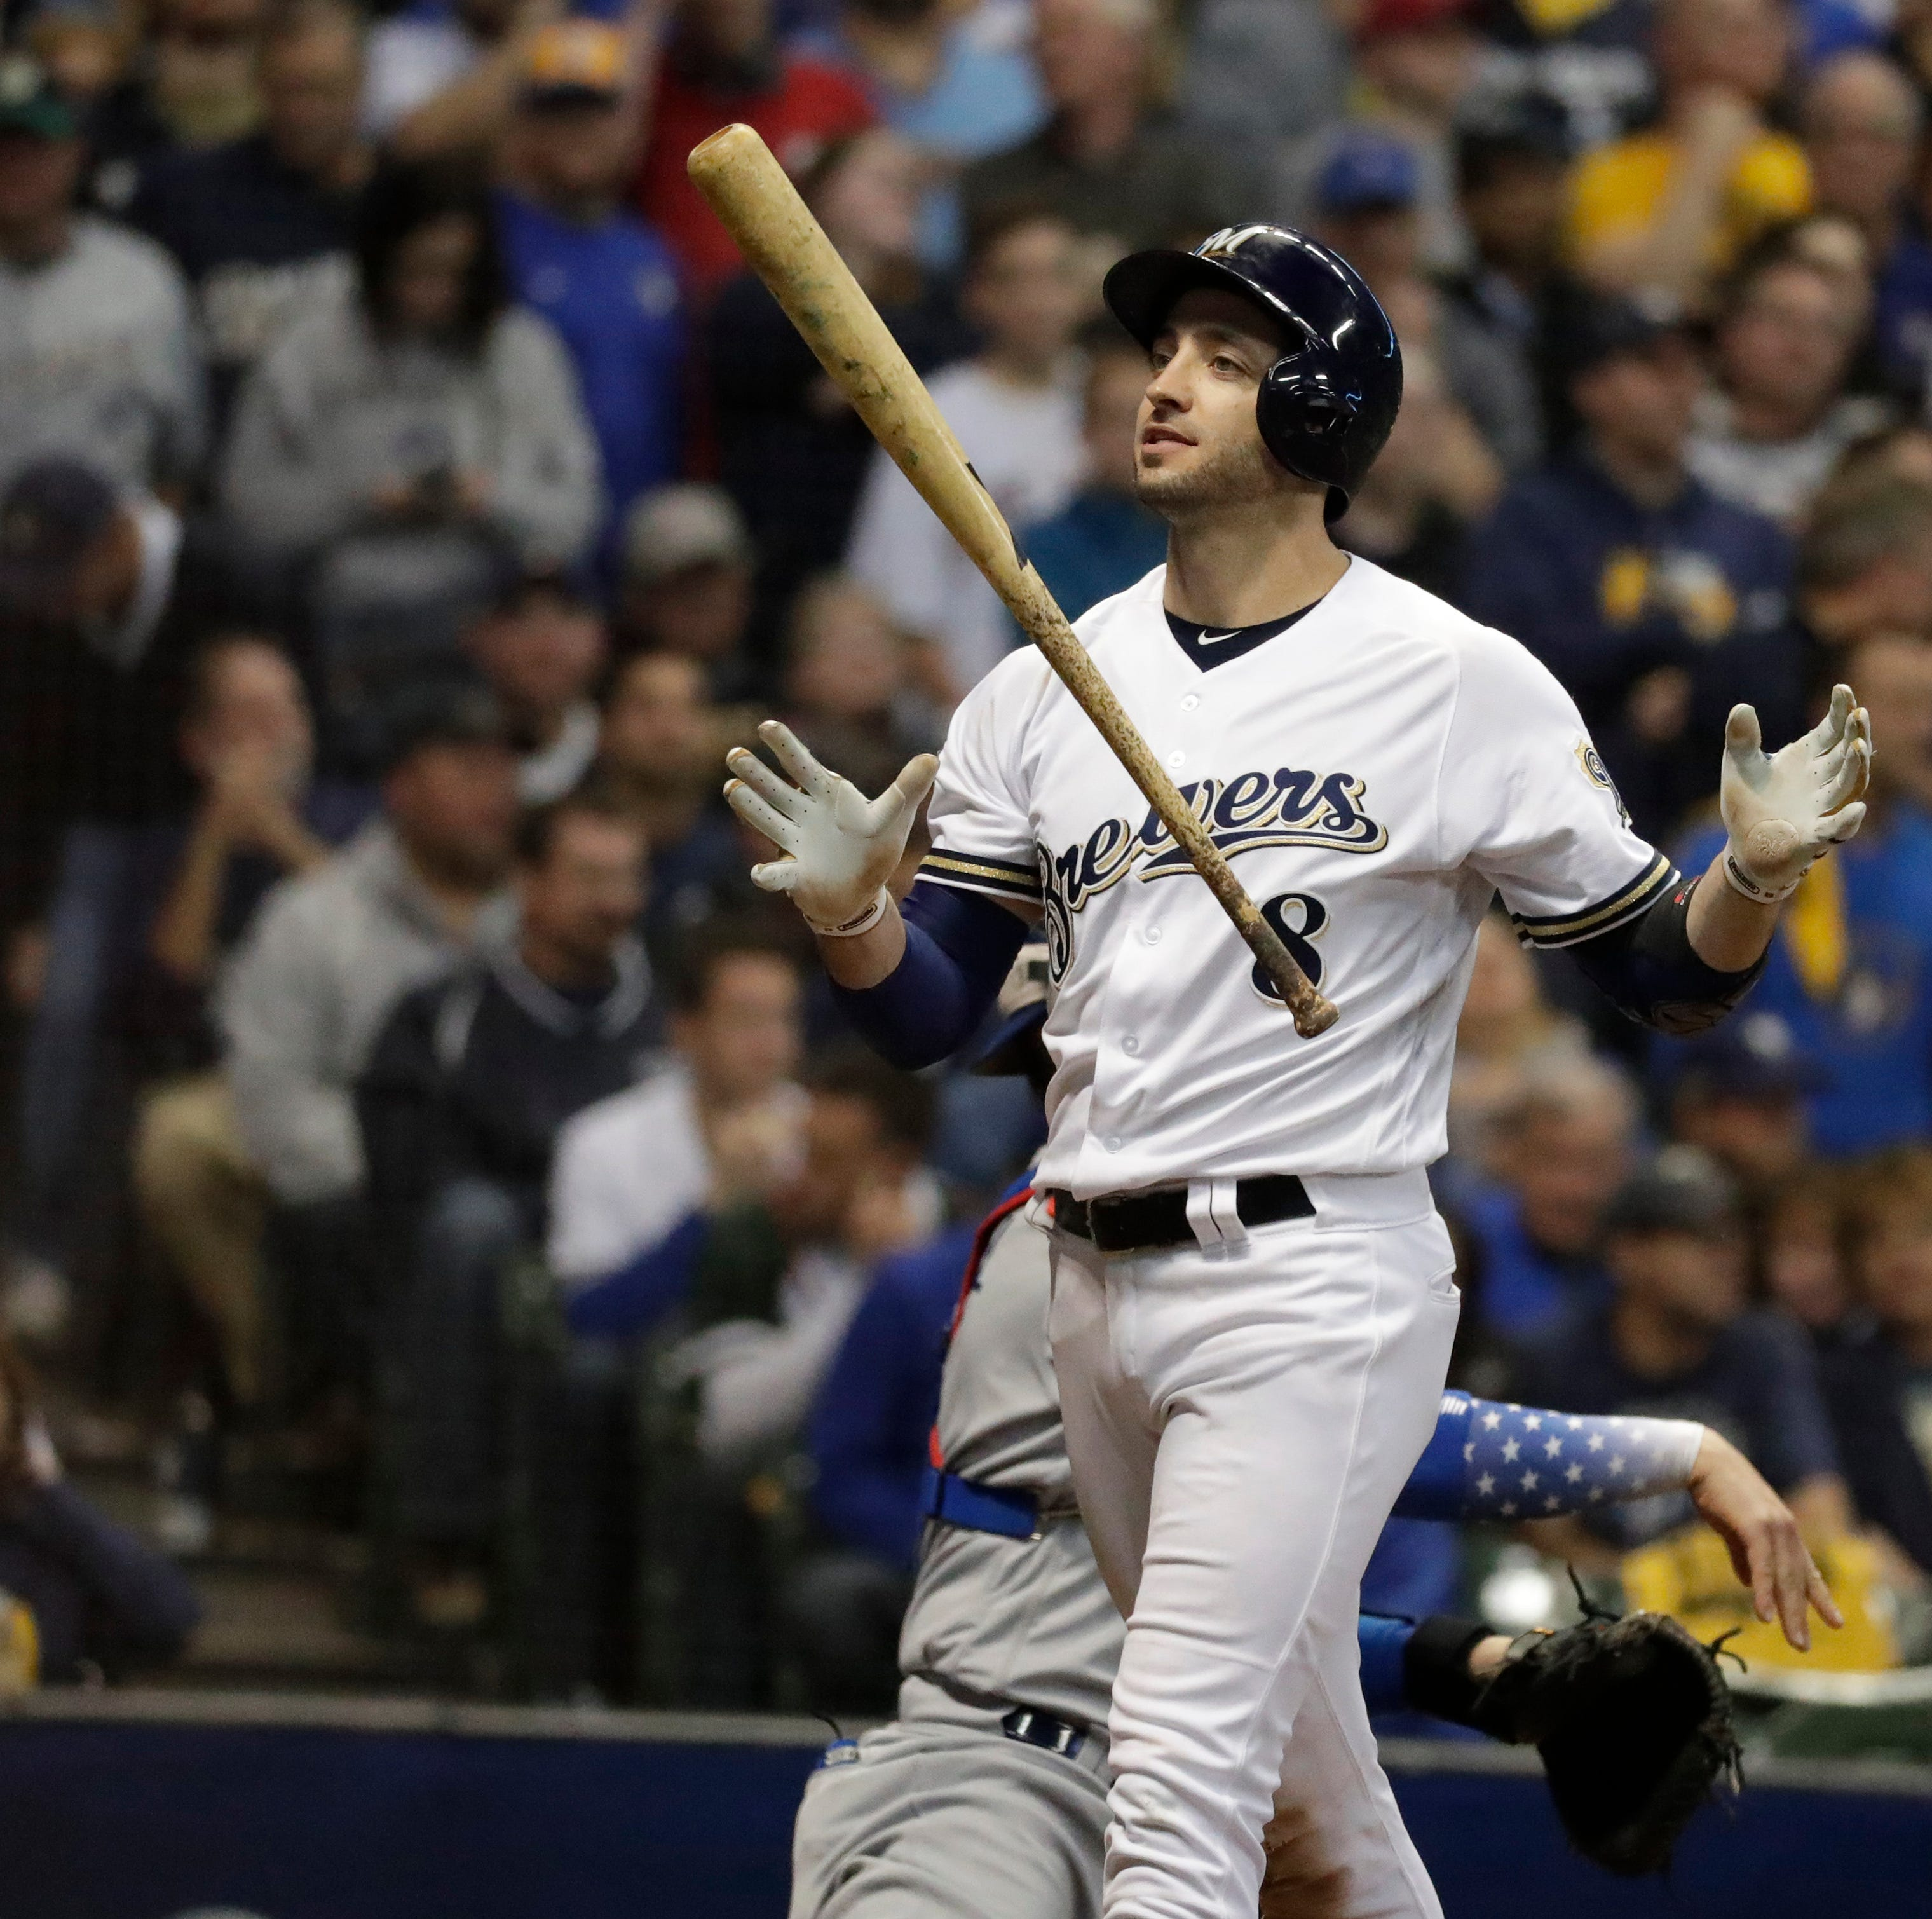 Ryan Braun forgot his passport and misses the Brewers' trip to Montreal, and Twitter wasn't buying it